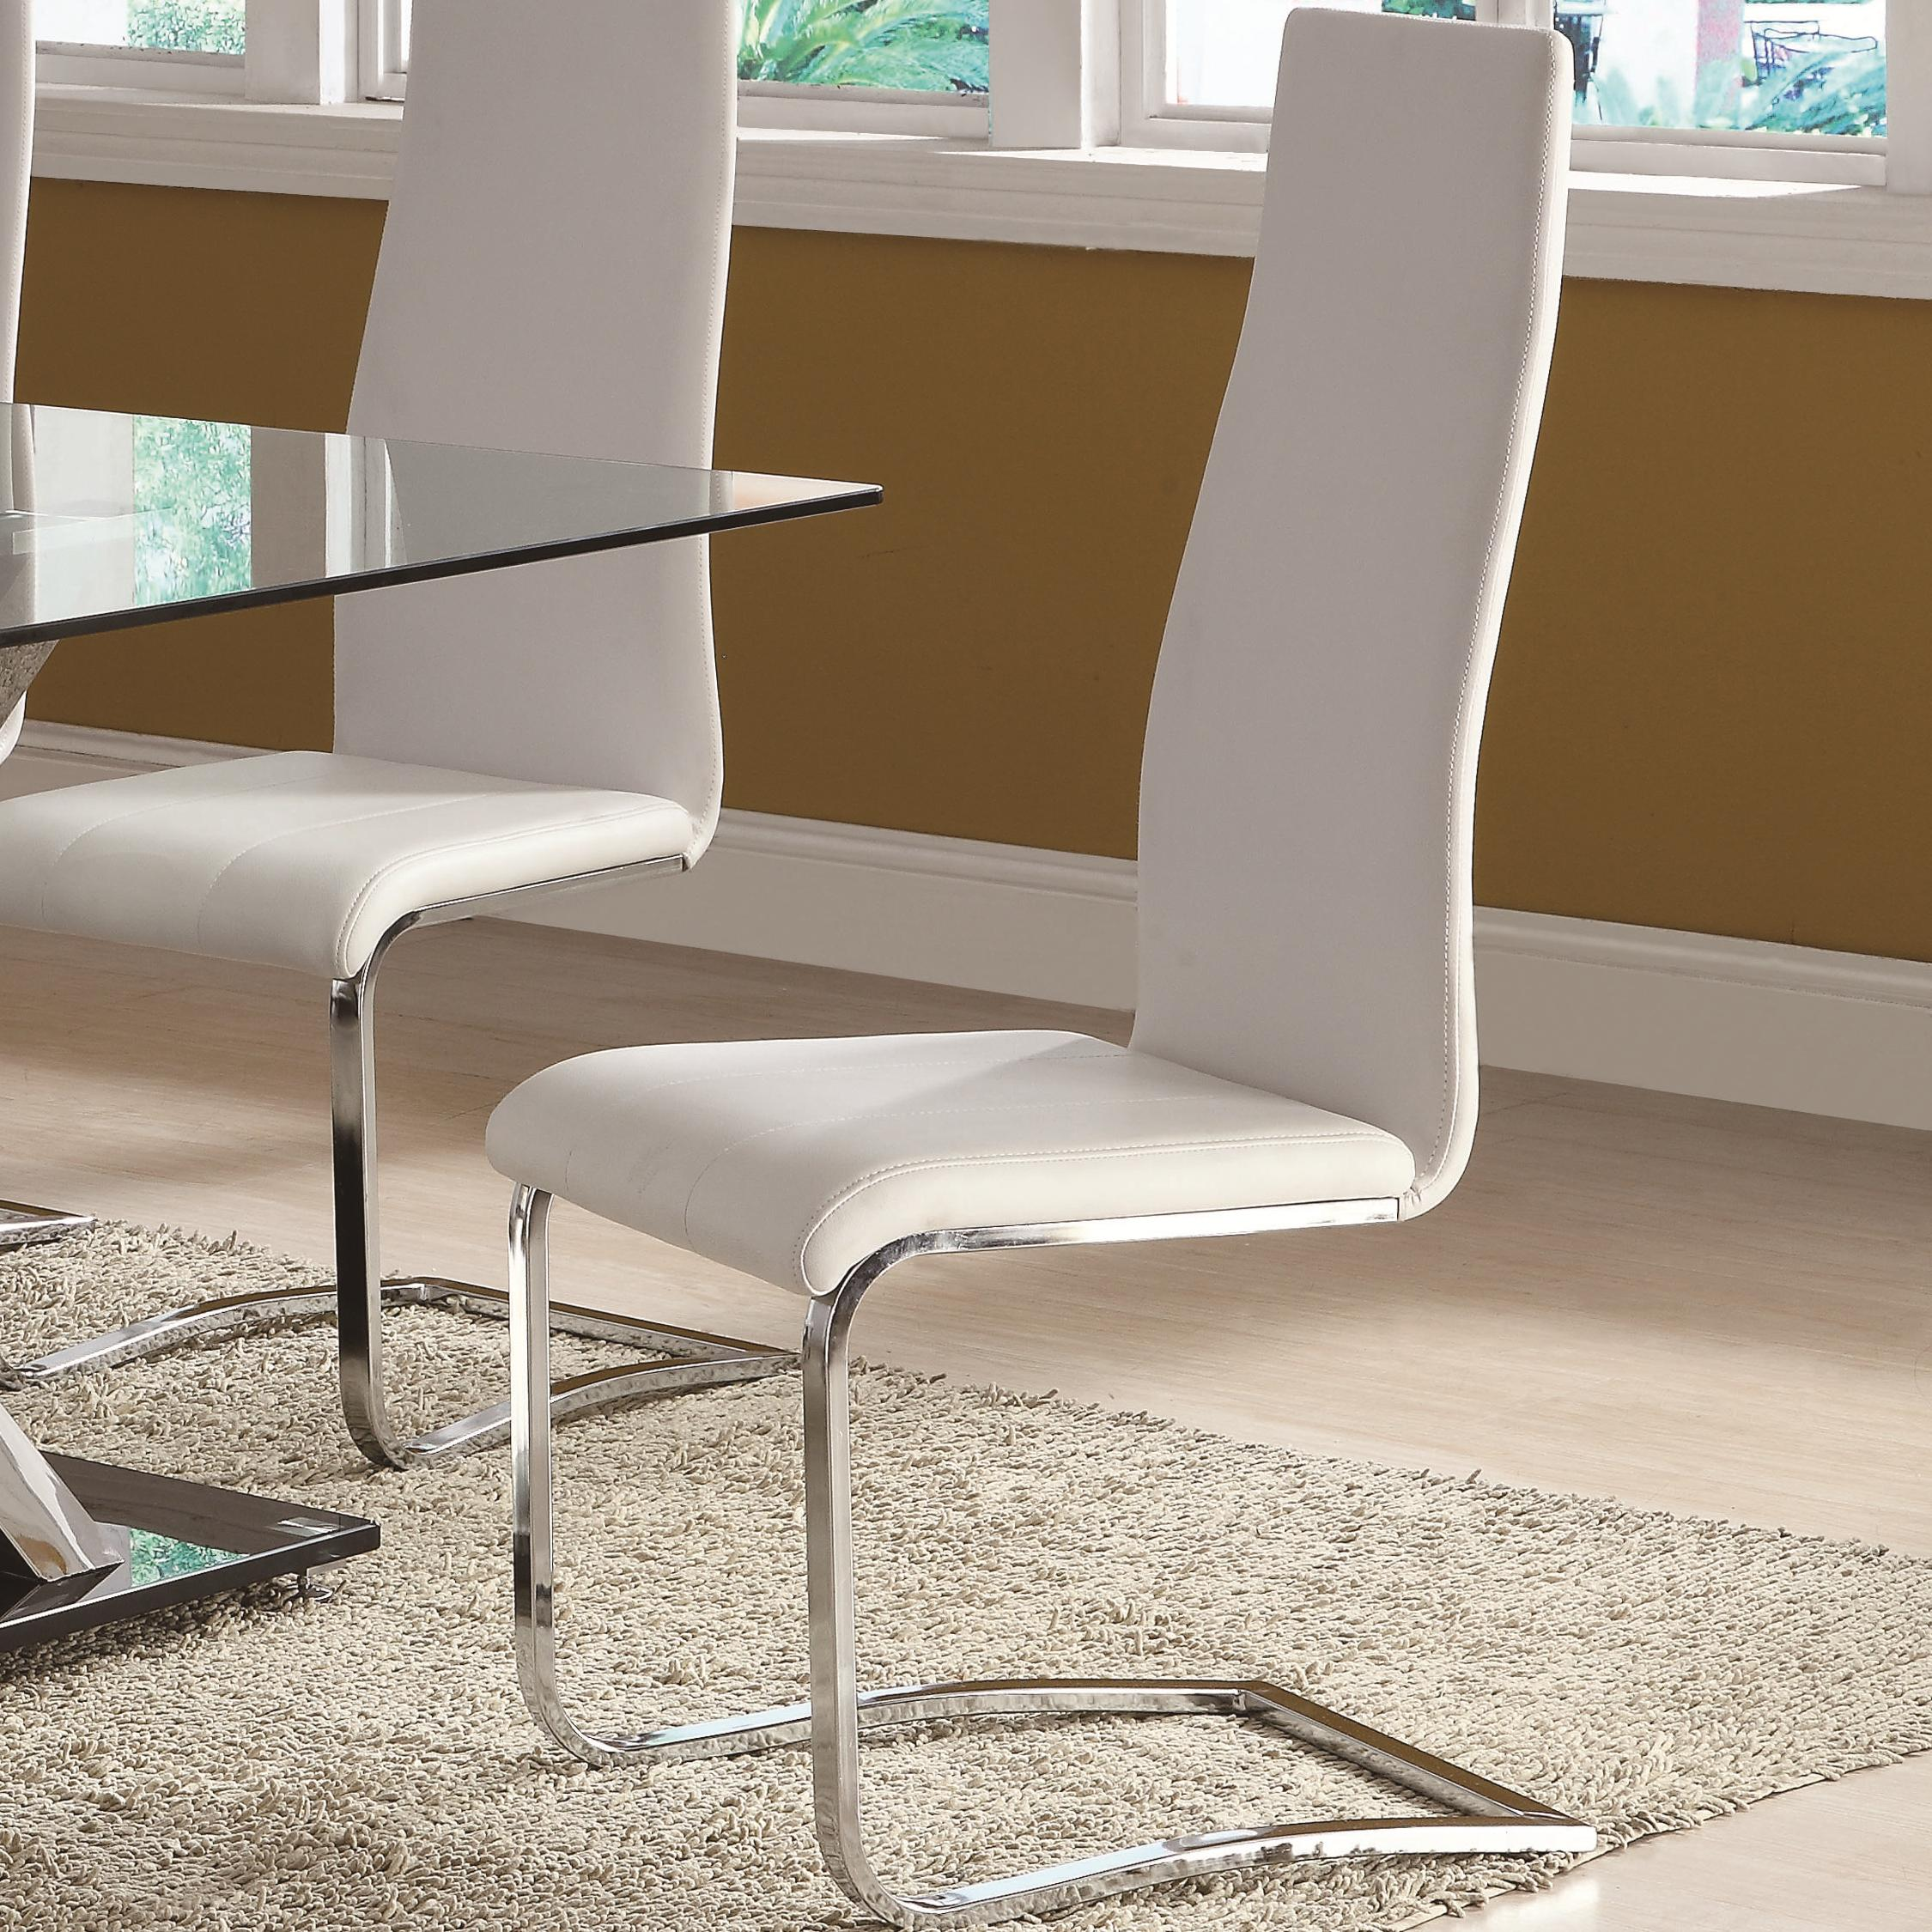 Modern Leather Chairs Modern Dining White Faux Leather Dining Chair With Chrome Legs By Coaster At Dunk Bright Furniture